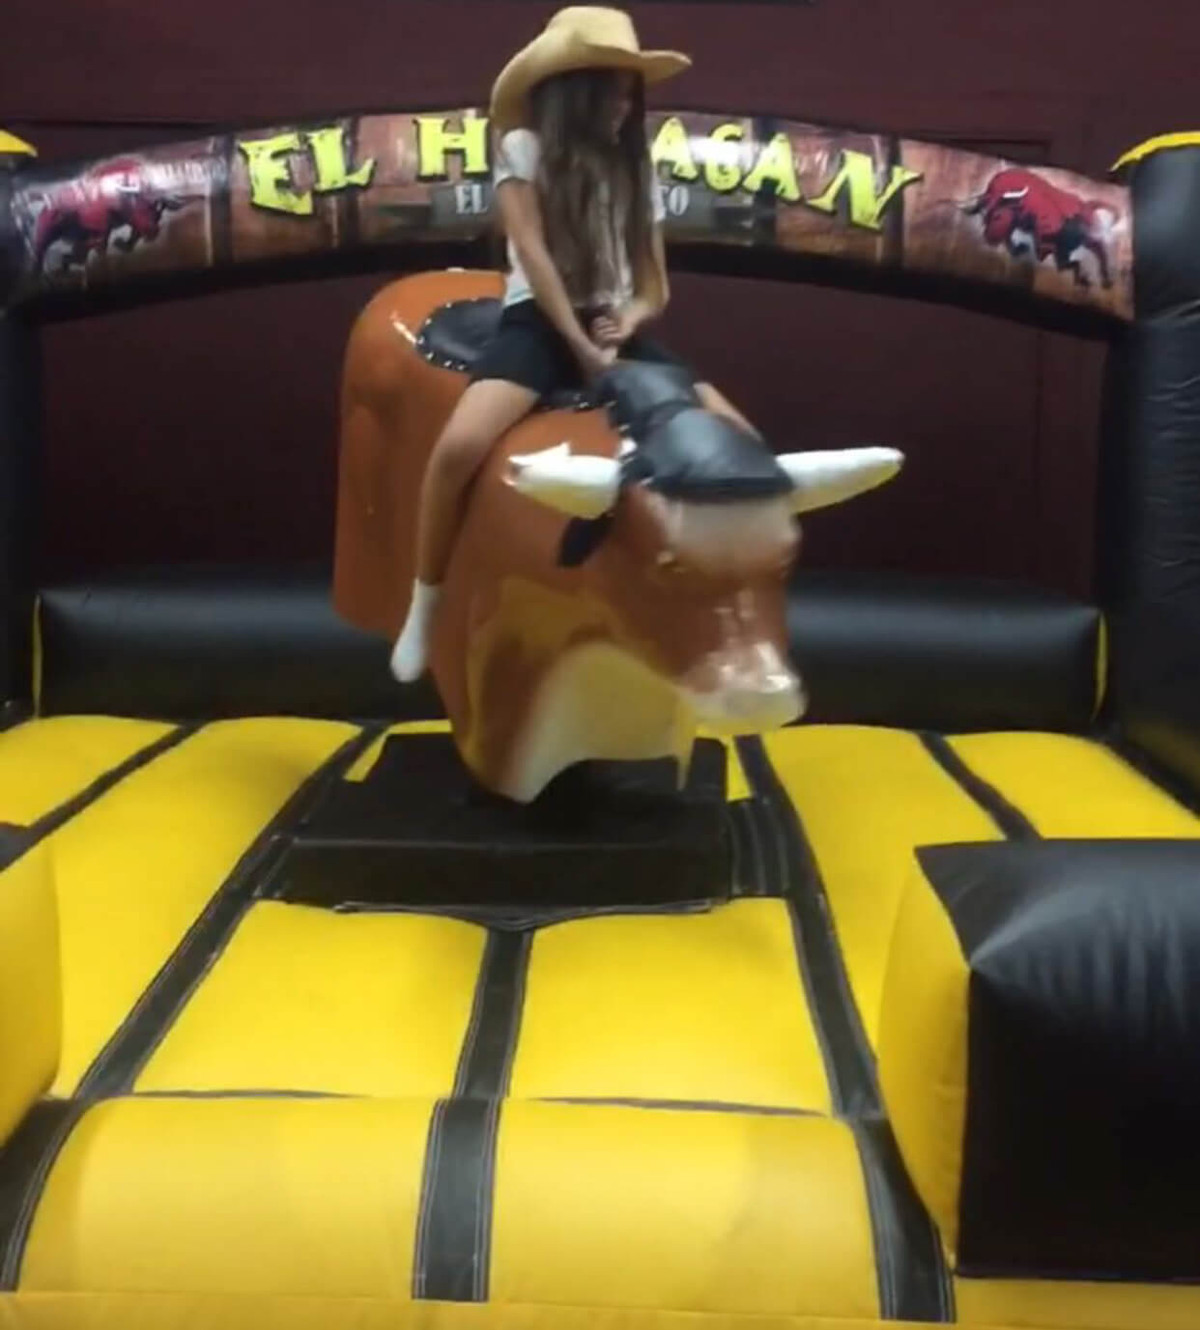 Mechanical Bull With Attendant